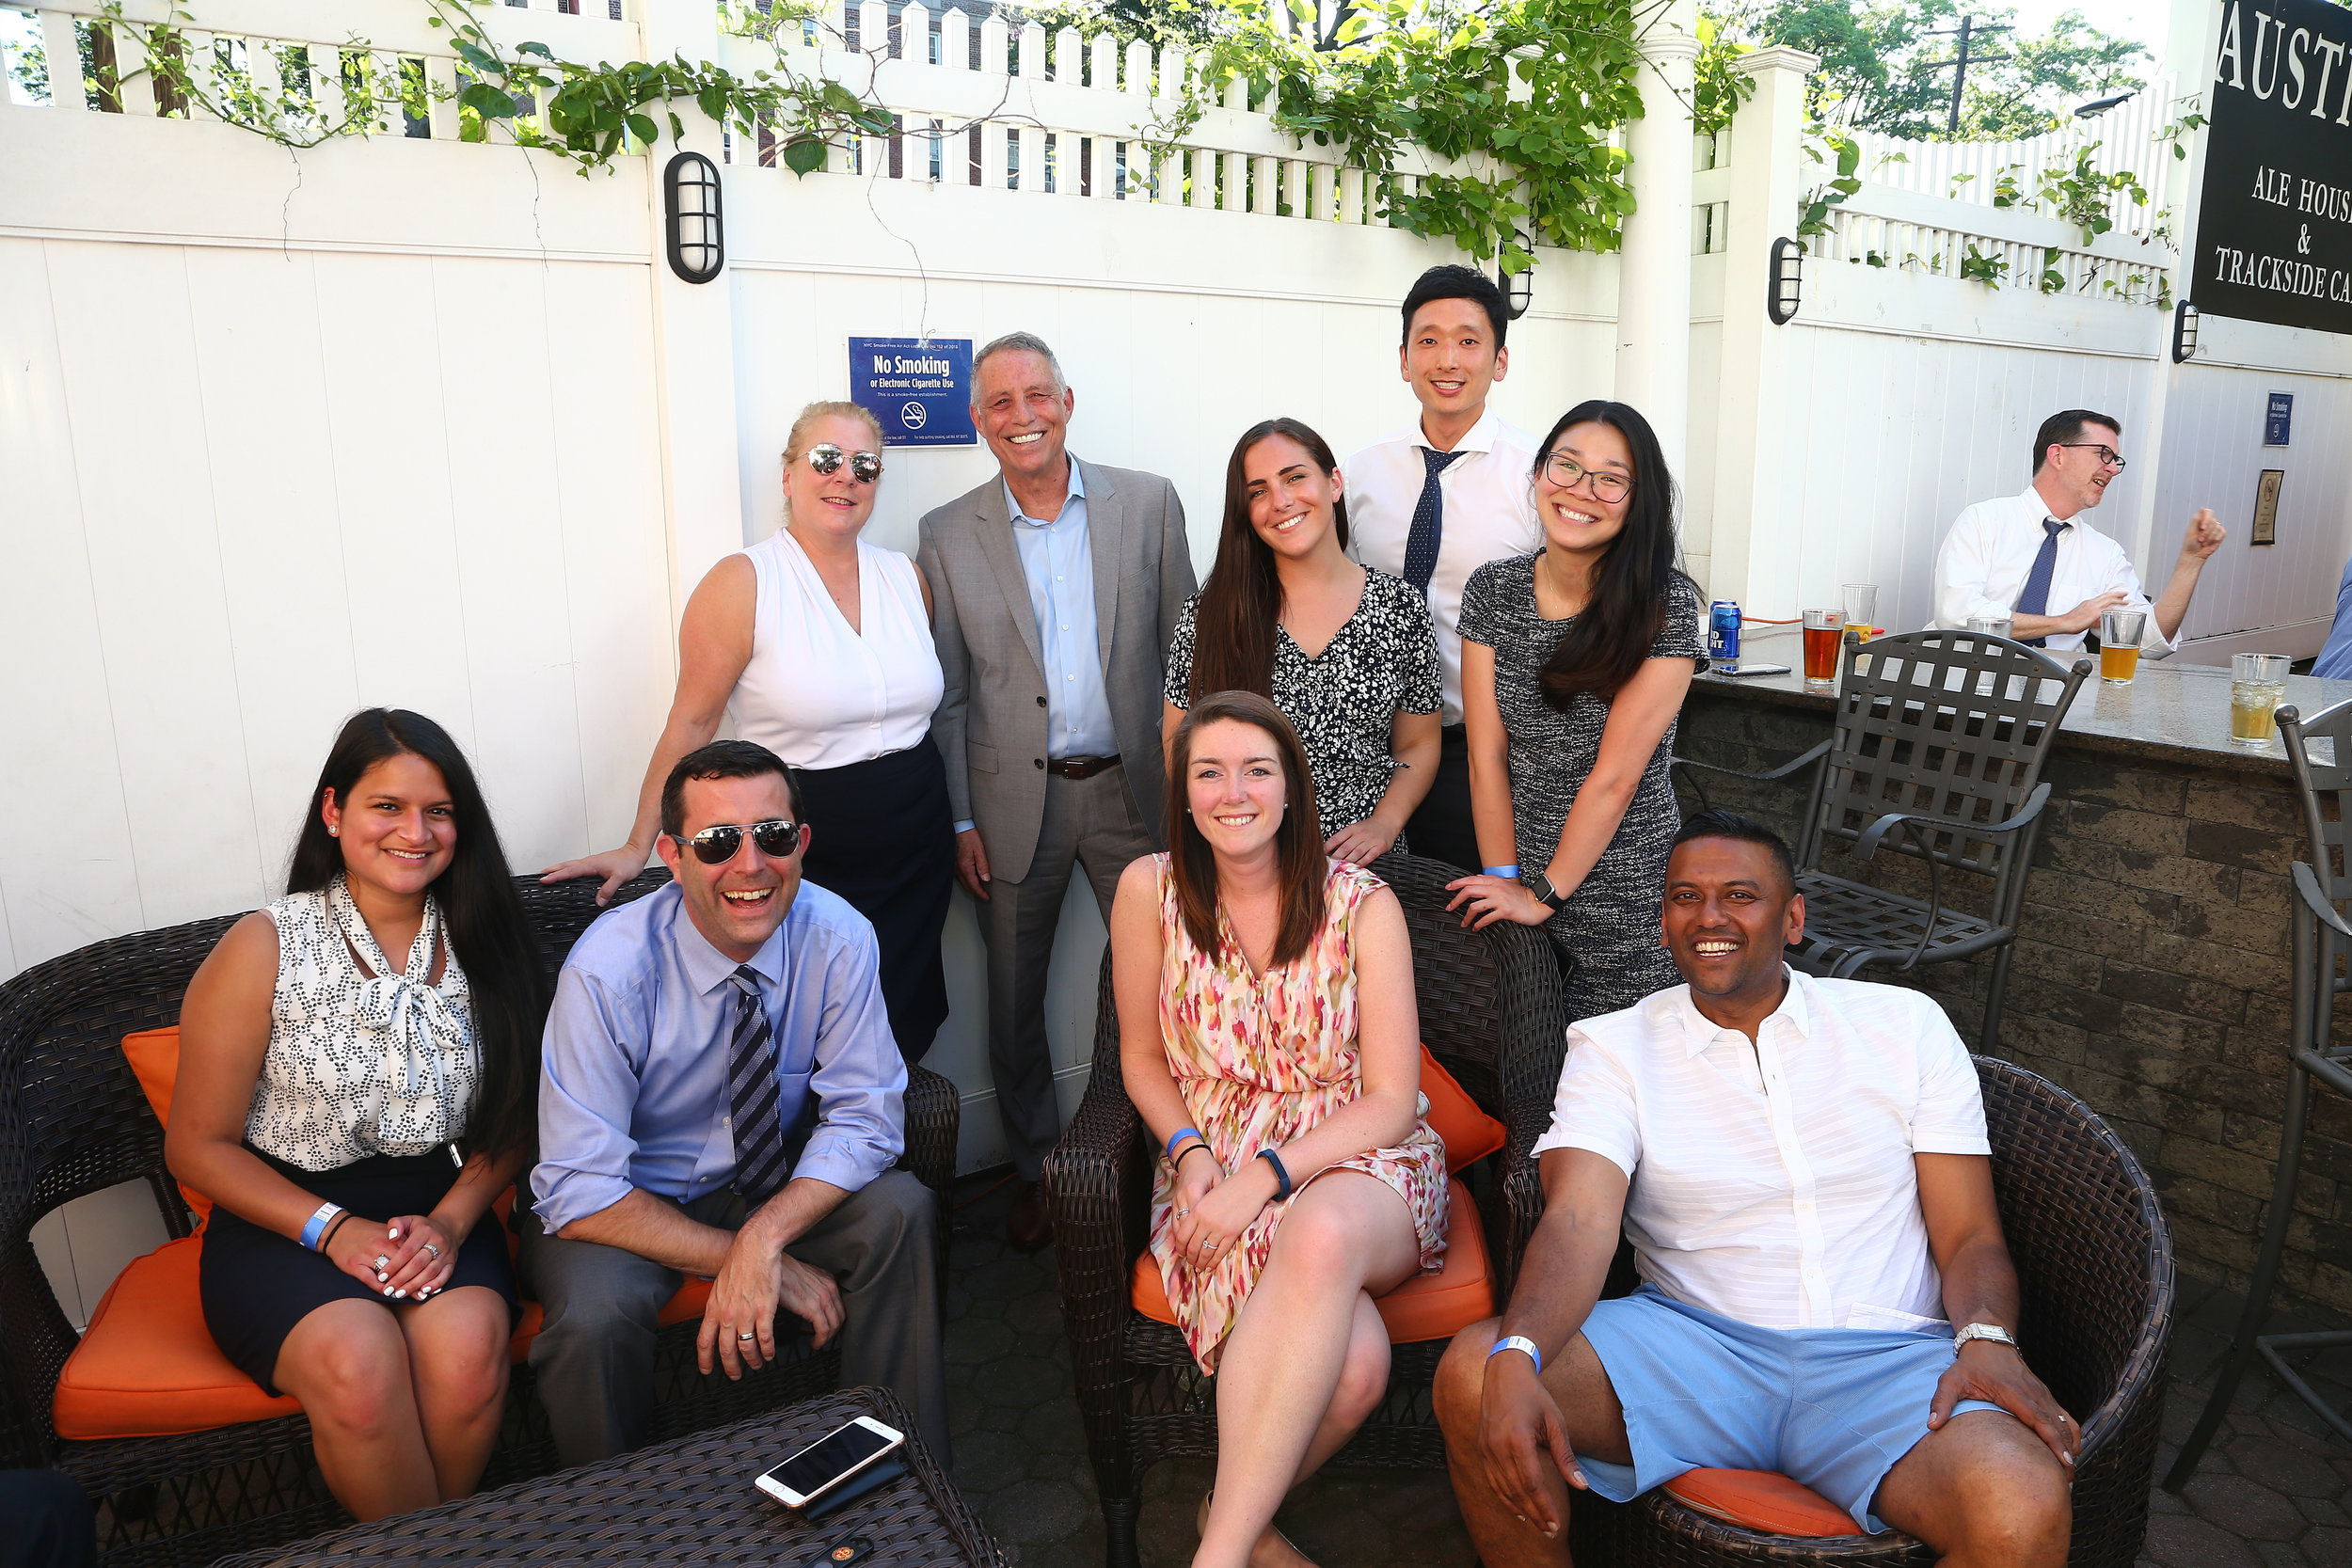 From left, Alexia Compoverde, Eugene M. Guarino, Denise Tirino, Todd Greenberg, Kaitlyn Gaskin, Rachel Houle, Christopher Bae, Michelle Yong and Simiyon Haniff.